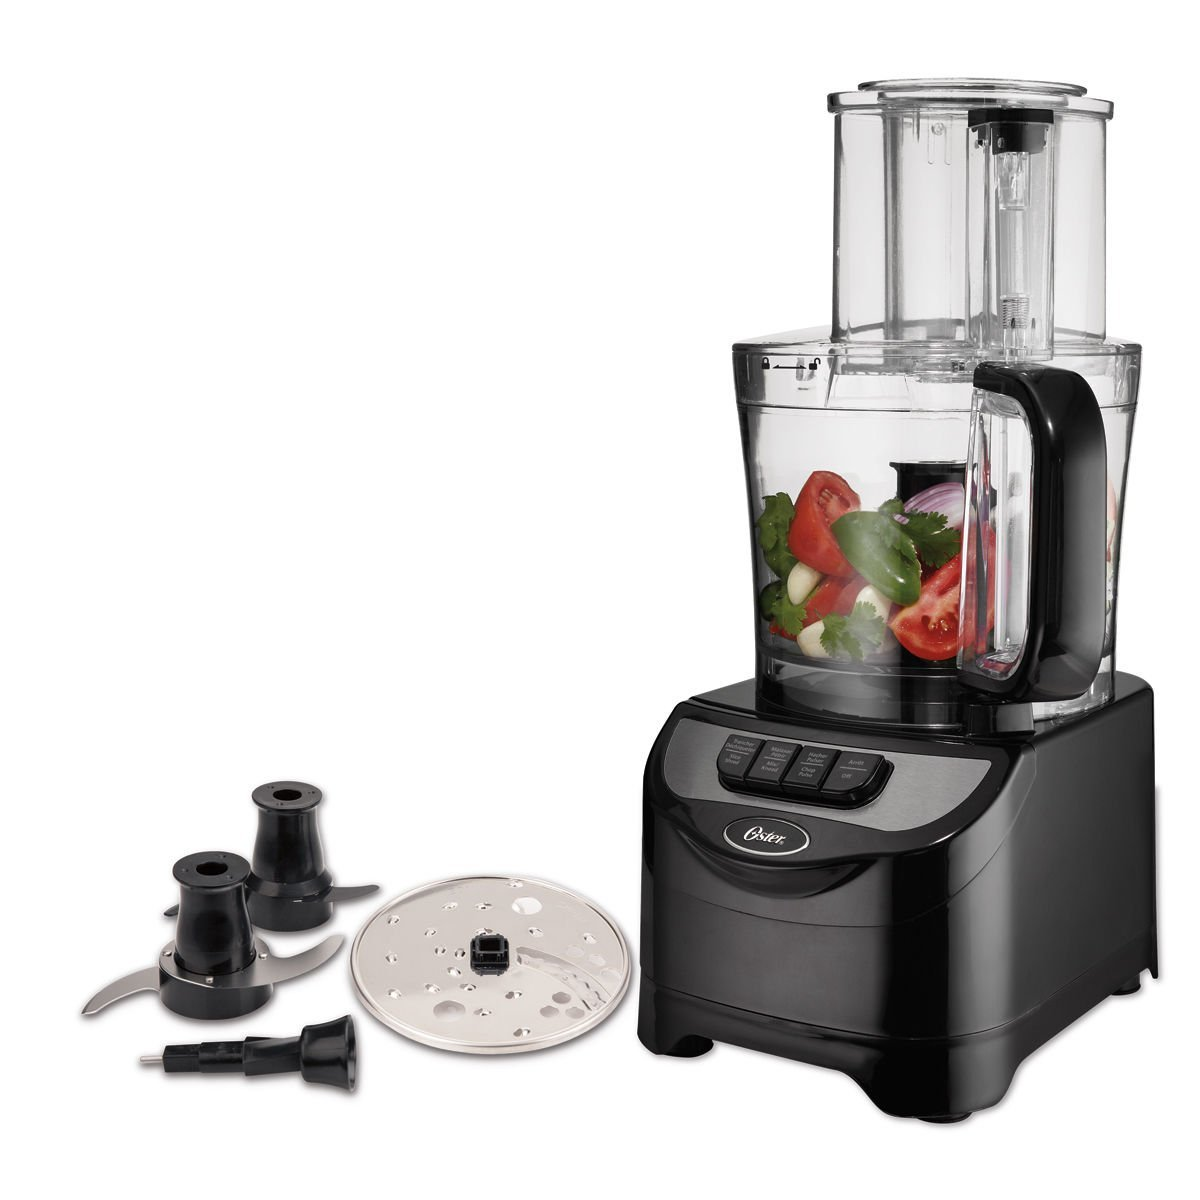 Oster 10-Cup Food Processor with Dough Blade, Black FPSTFP1355-033